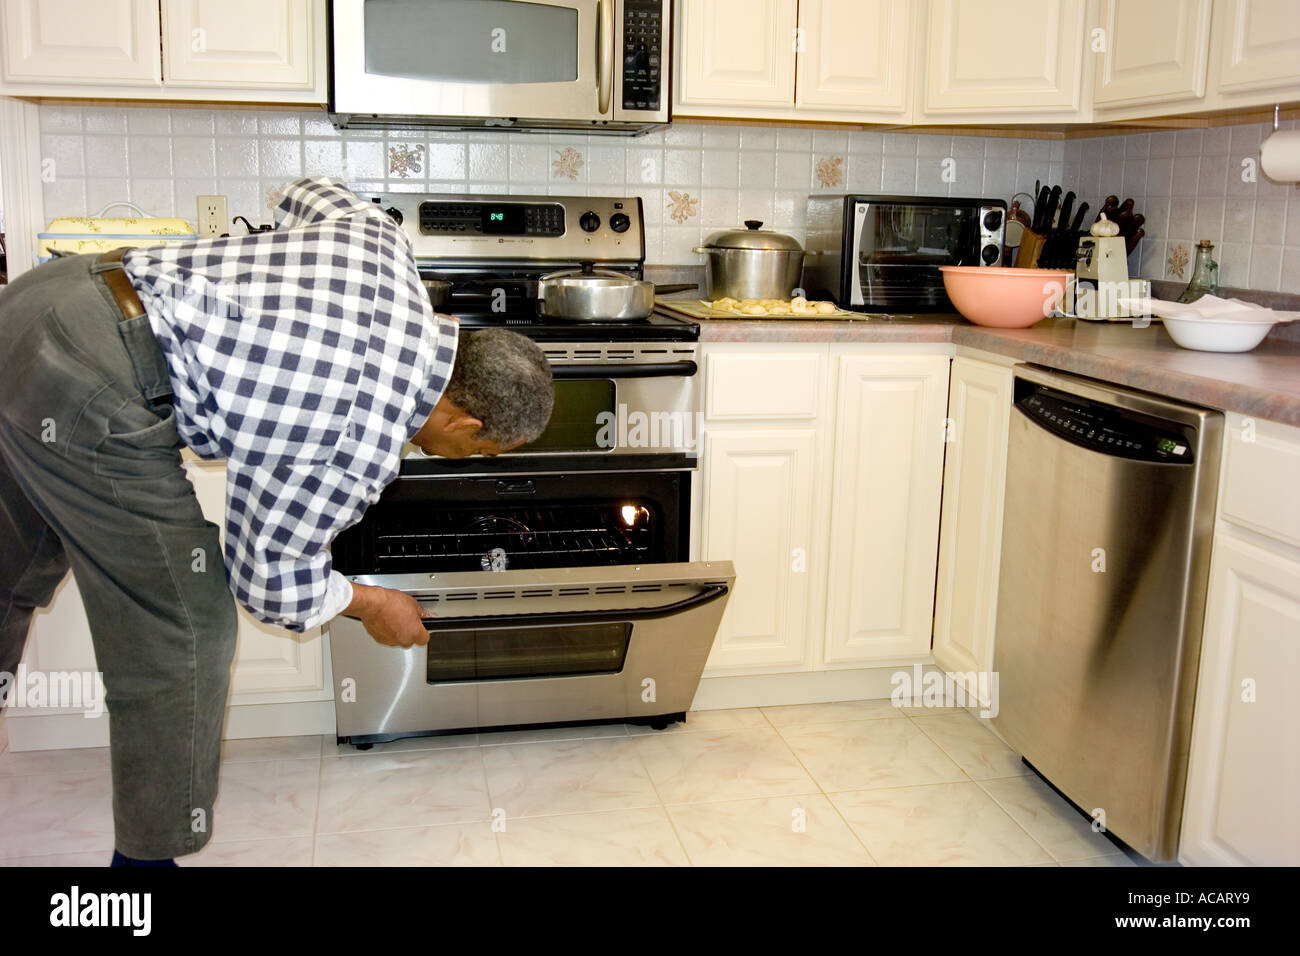 Man in the Kitchen looking in oven - Stock Image